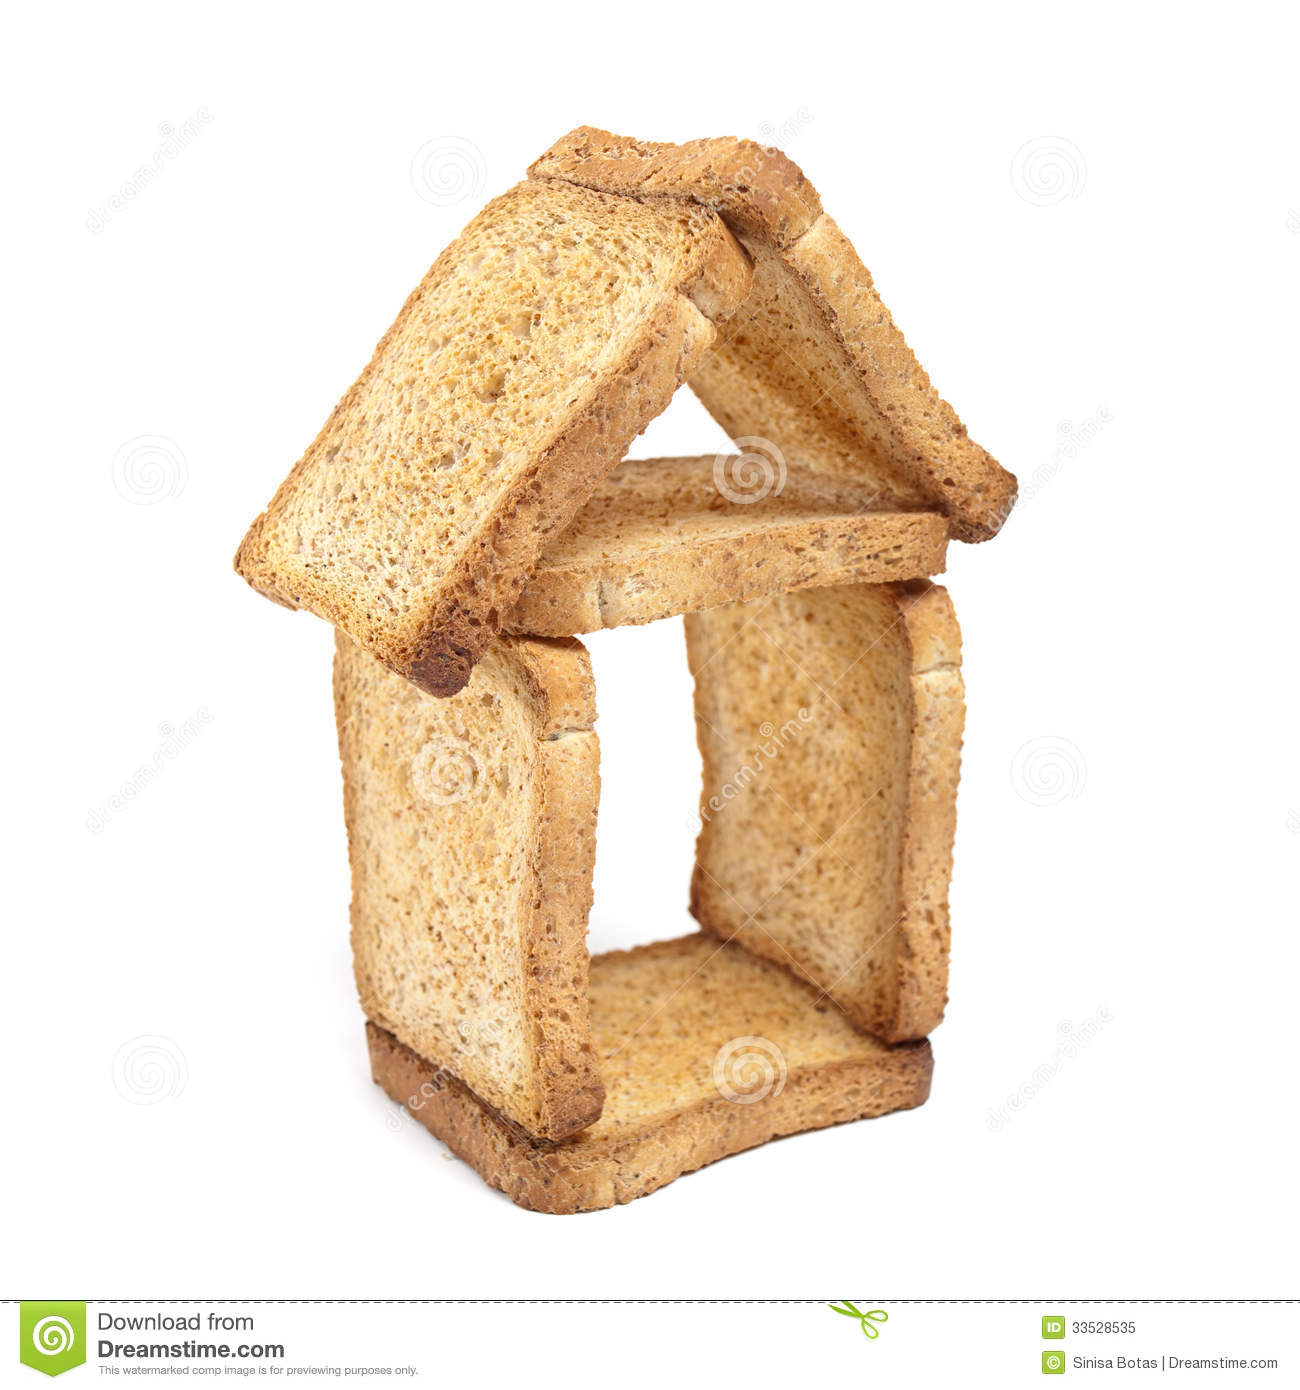 Image result for bread house